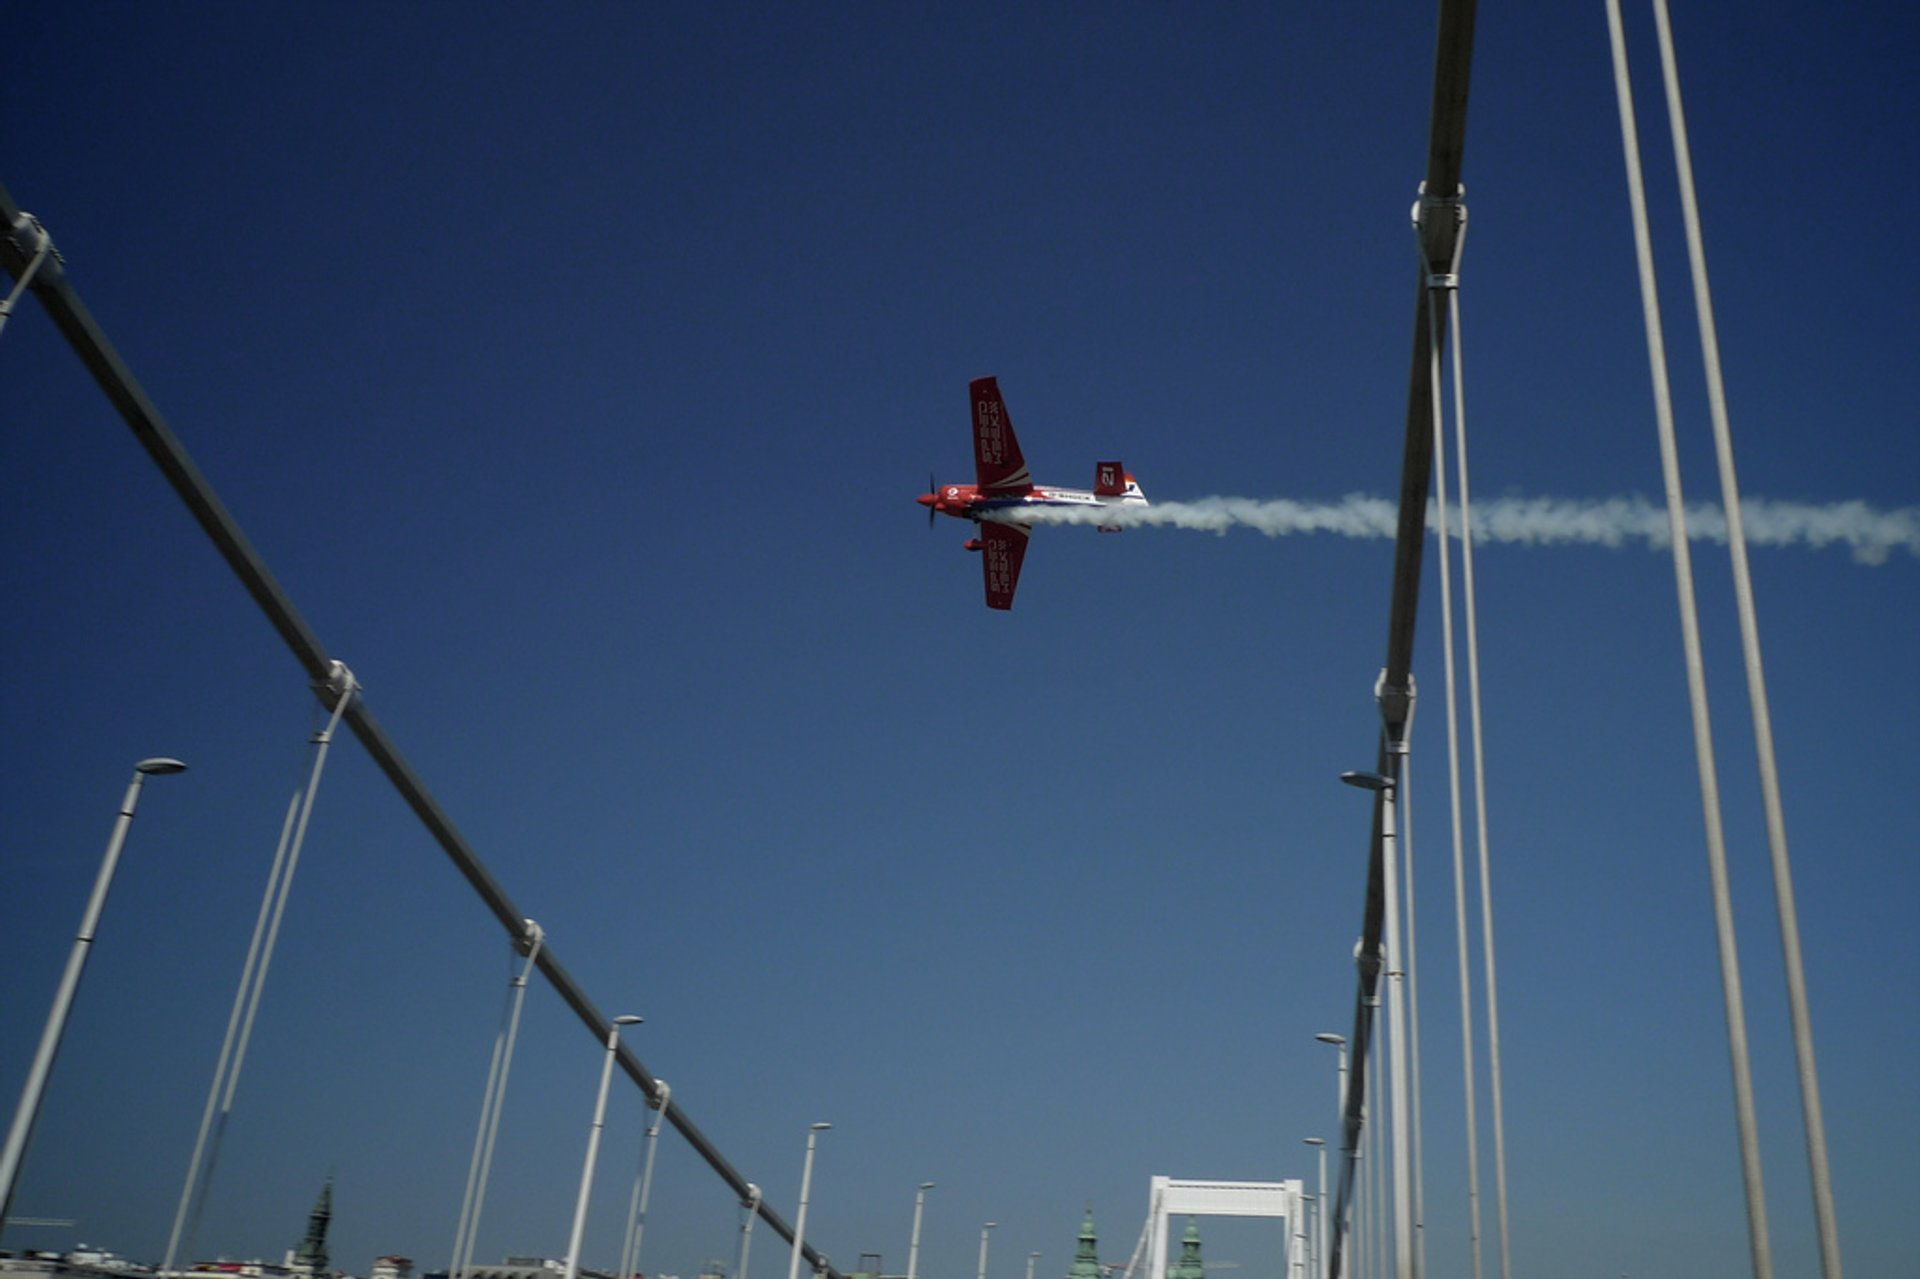 Best time for The Red Bull Air Race in Hungary 2020